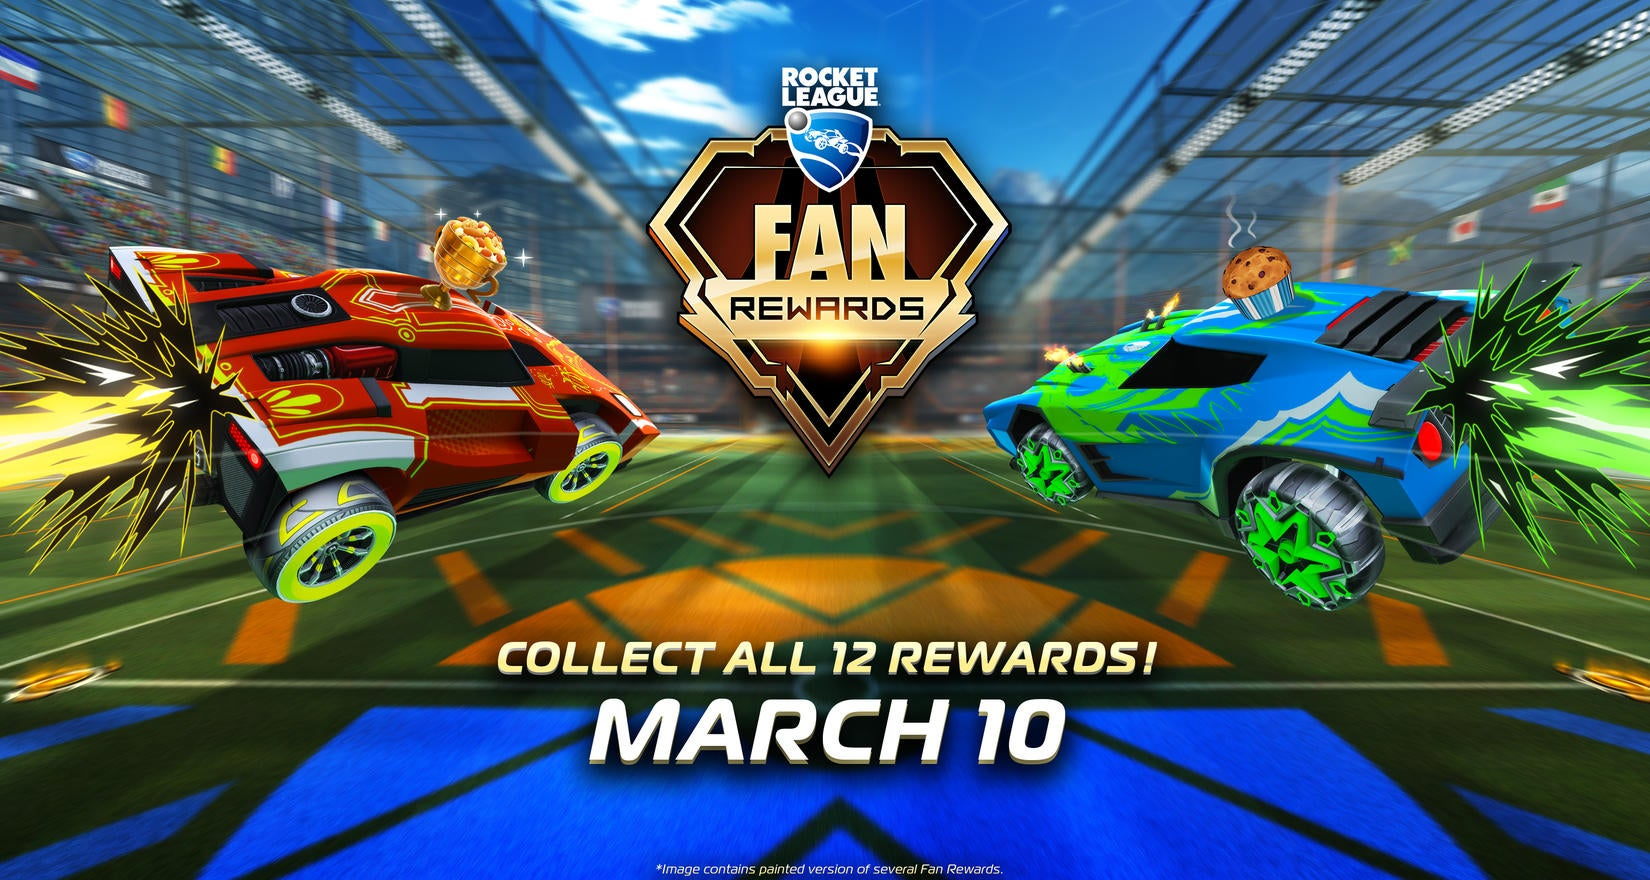 RLCS Returns Tomorrow With New Fan Rewards! Image